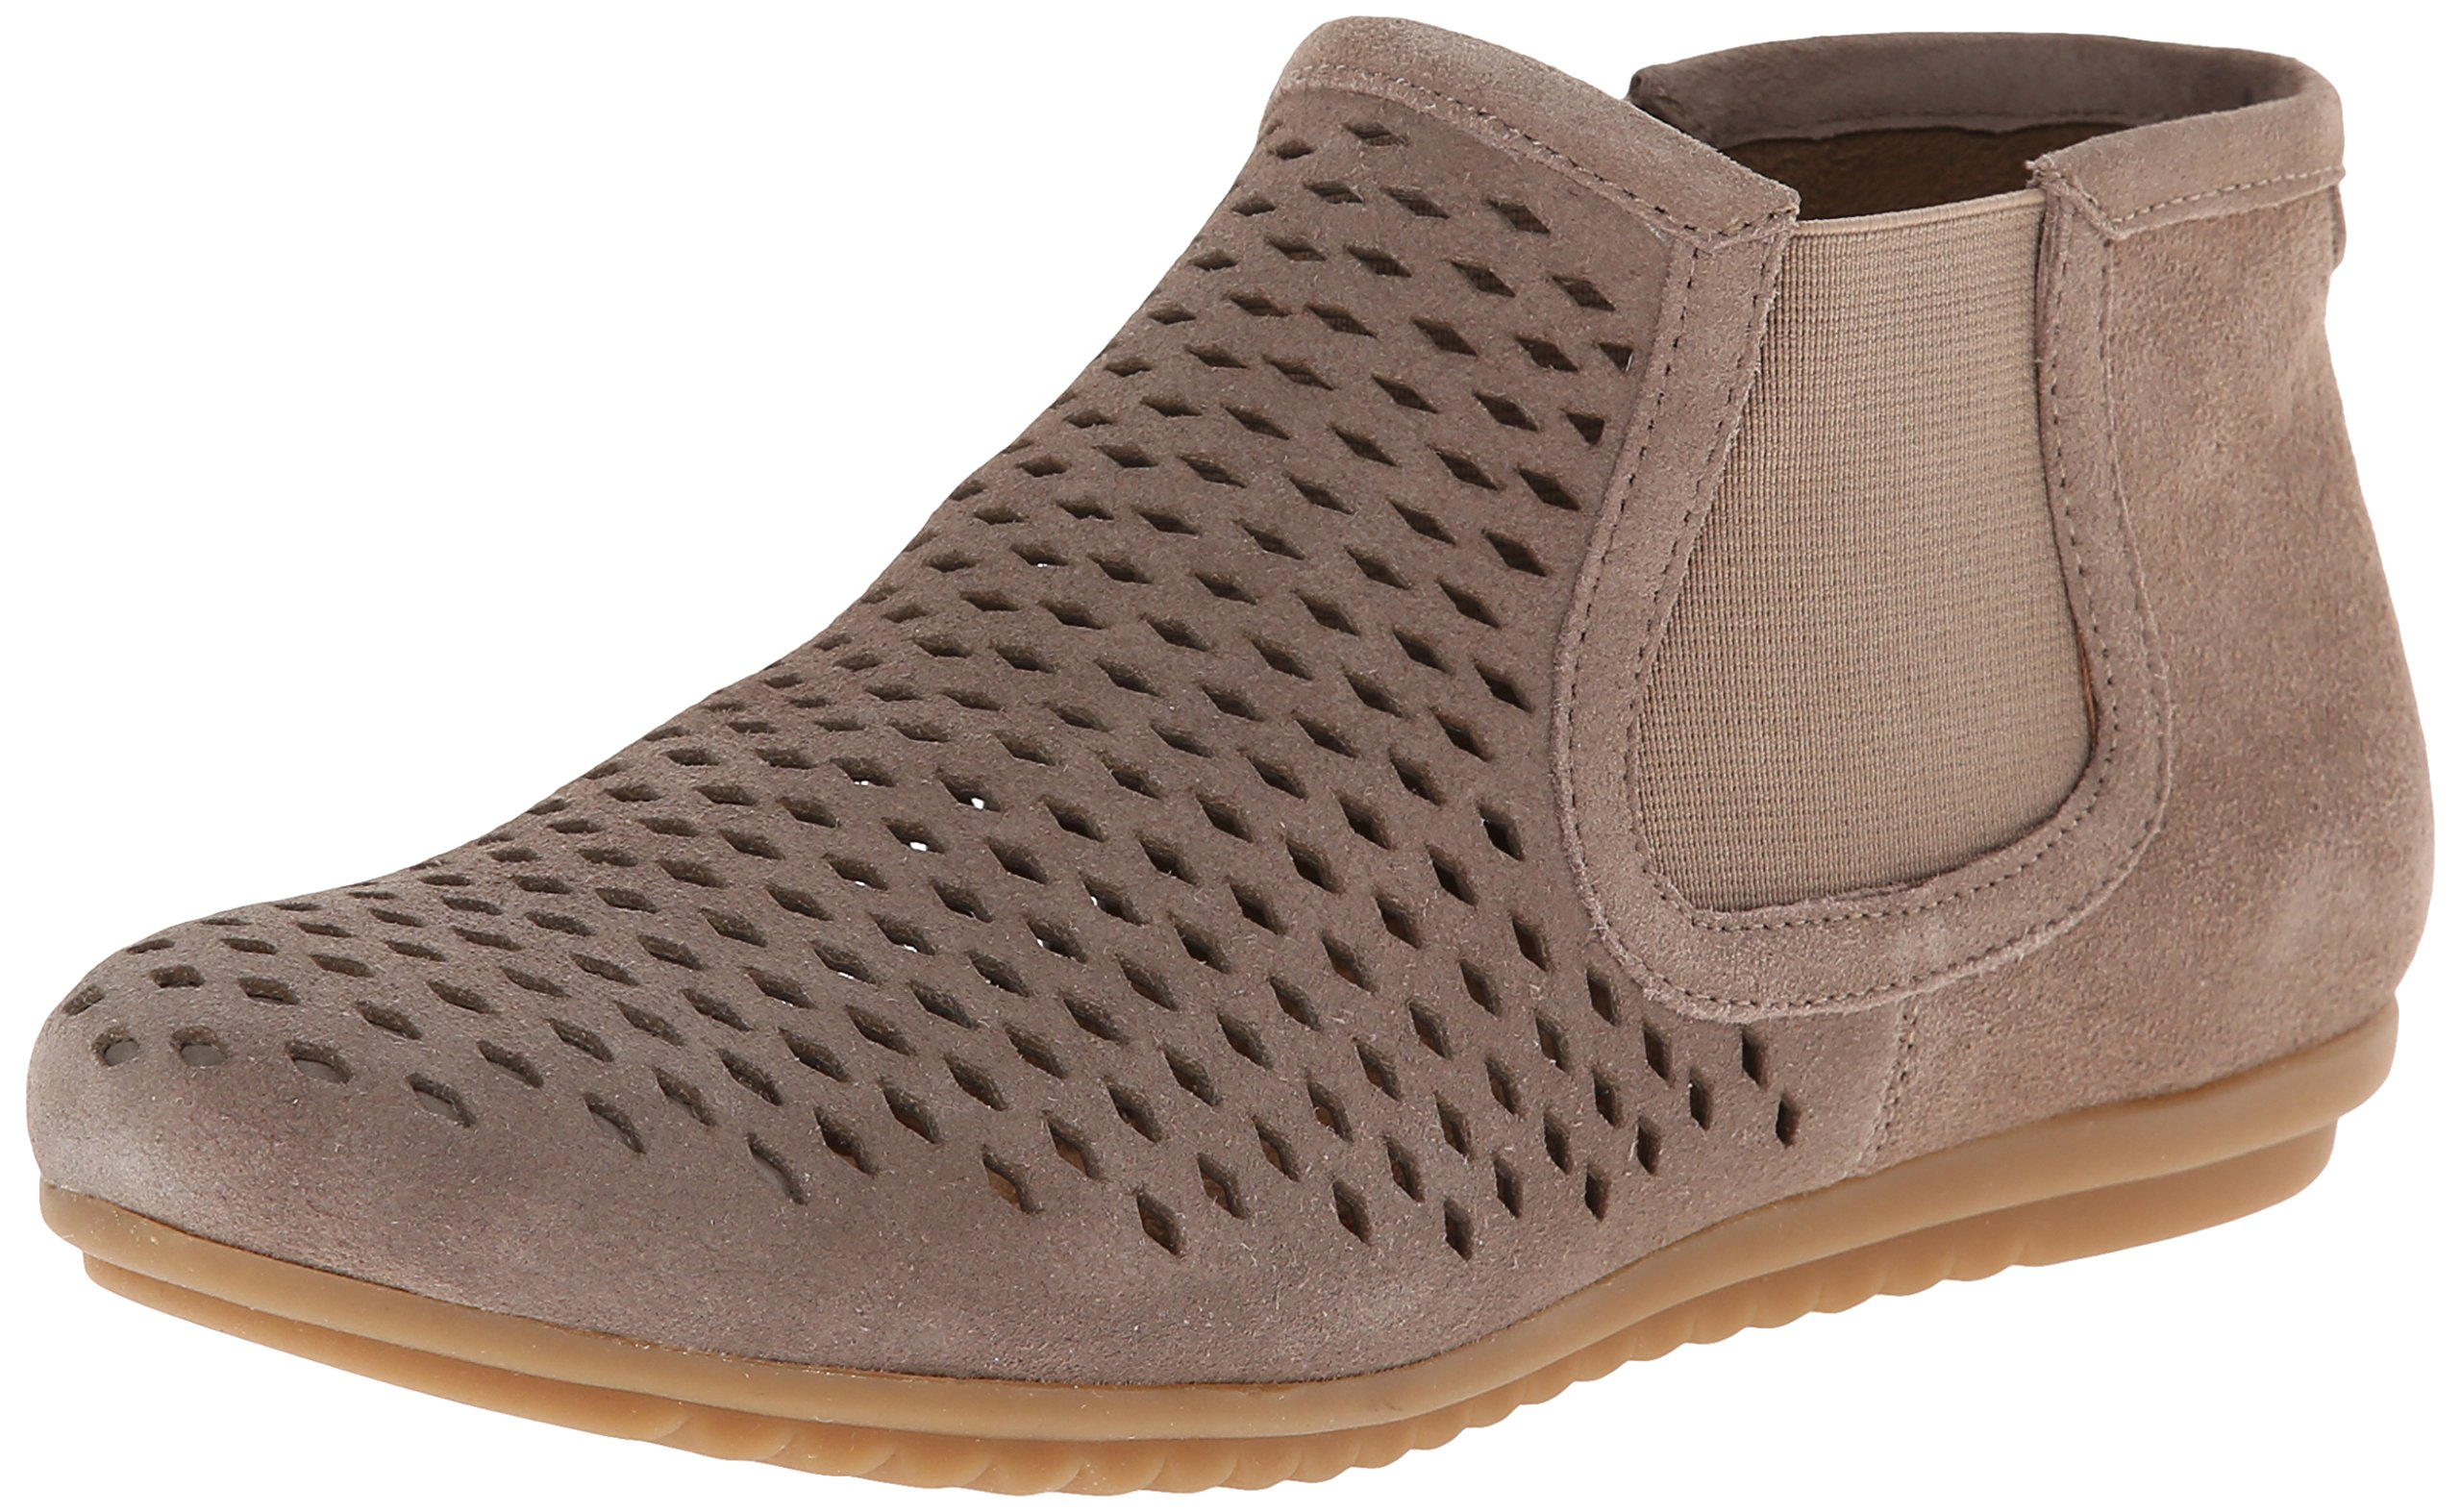 Rockport Cobb Hill Women's Izzy CH Flat,Taupe,7 M US